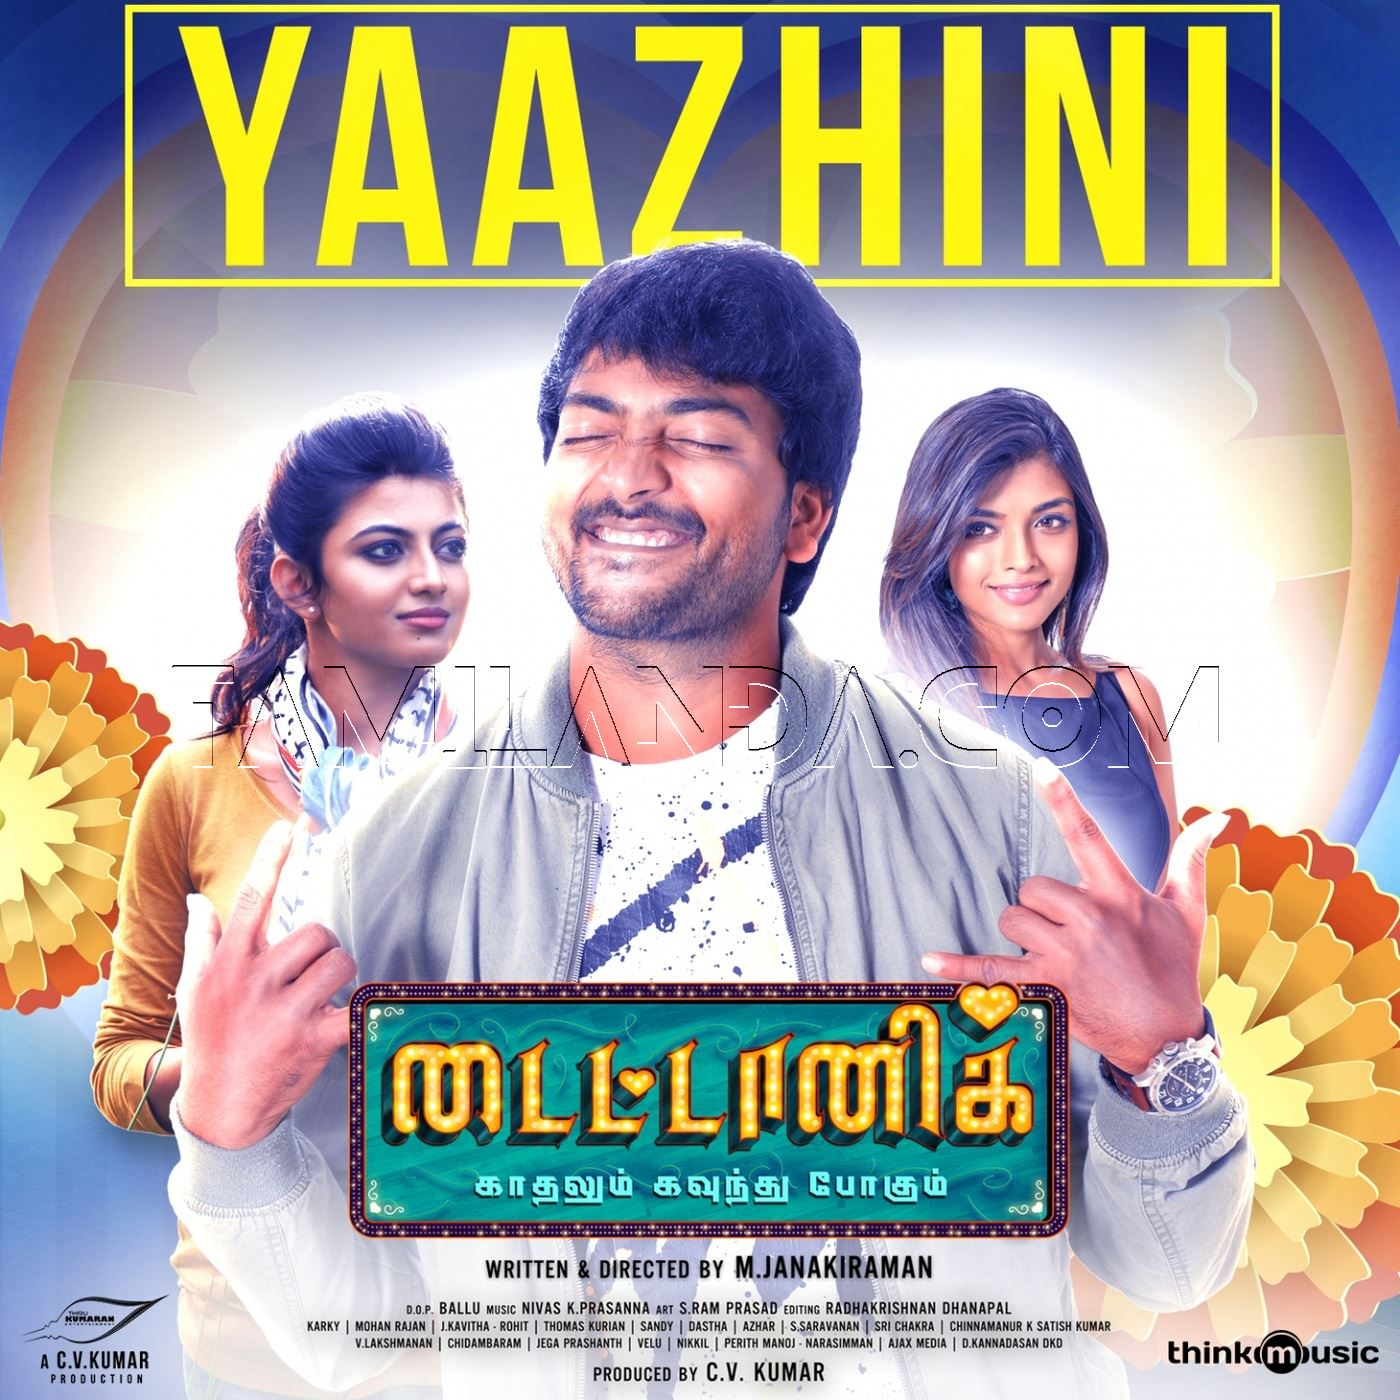 Yaazhini (From Titanic) – Single FLAC Song (2019)